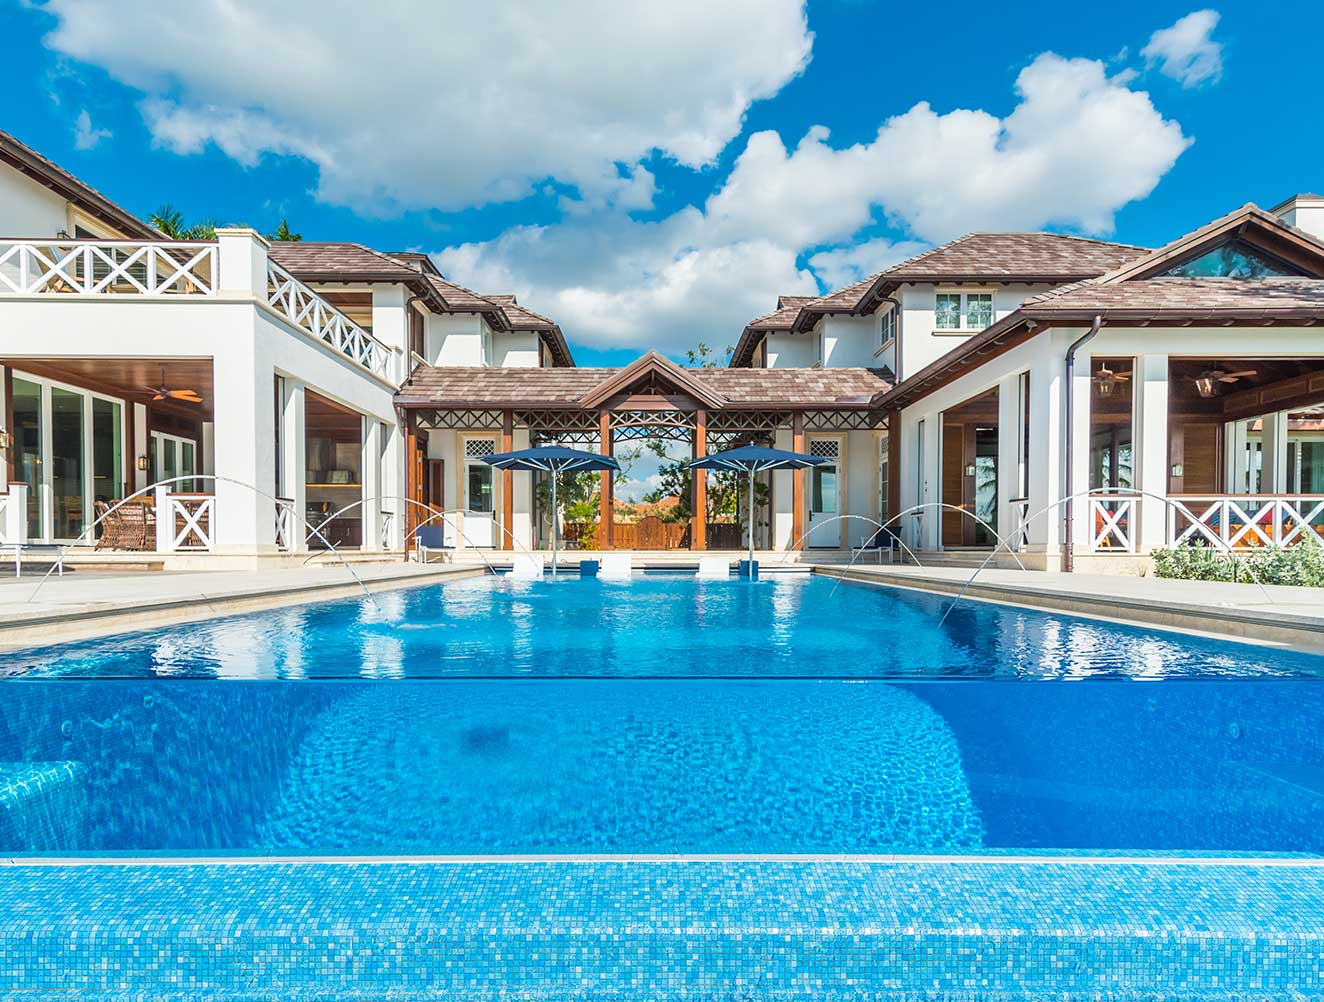 Pool and Architectural Details of Cutlass Estate in Naples Florida, single family home designed by Kukk Architecture & Design Naples Architecture Firm